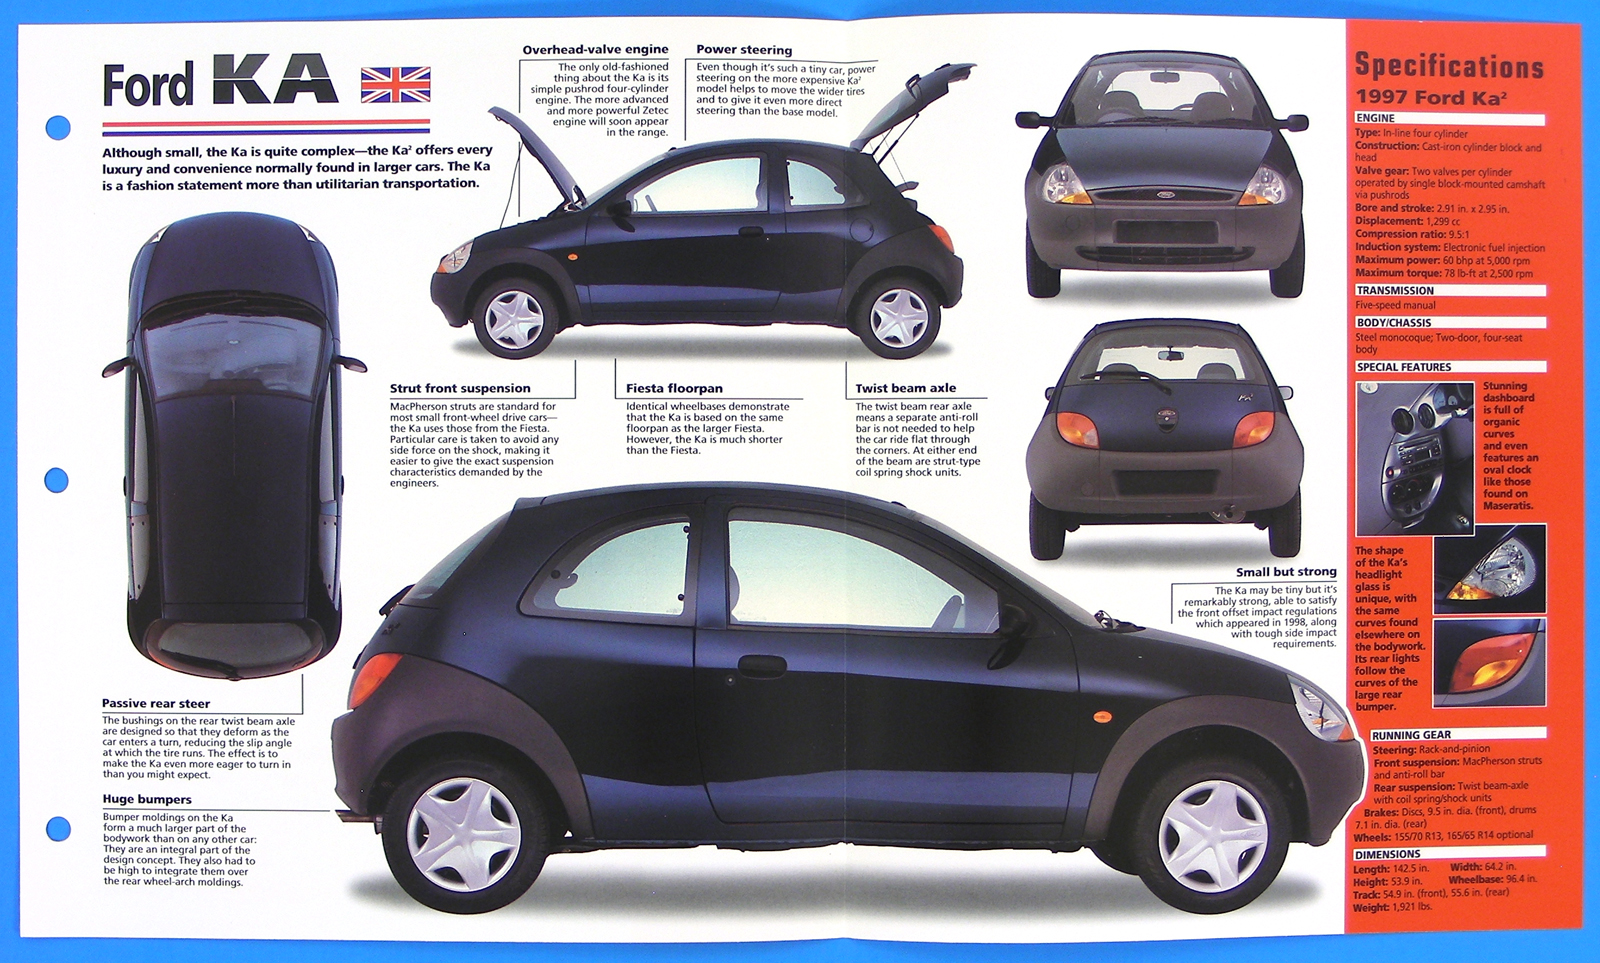 ford ka uk 1996 1998 spec sheet brochure poster imp hot. Black Bedroom Furniture Sets. Home Design Ideas